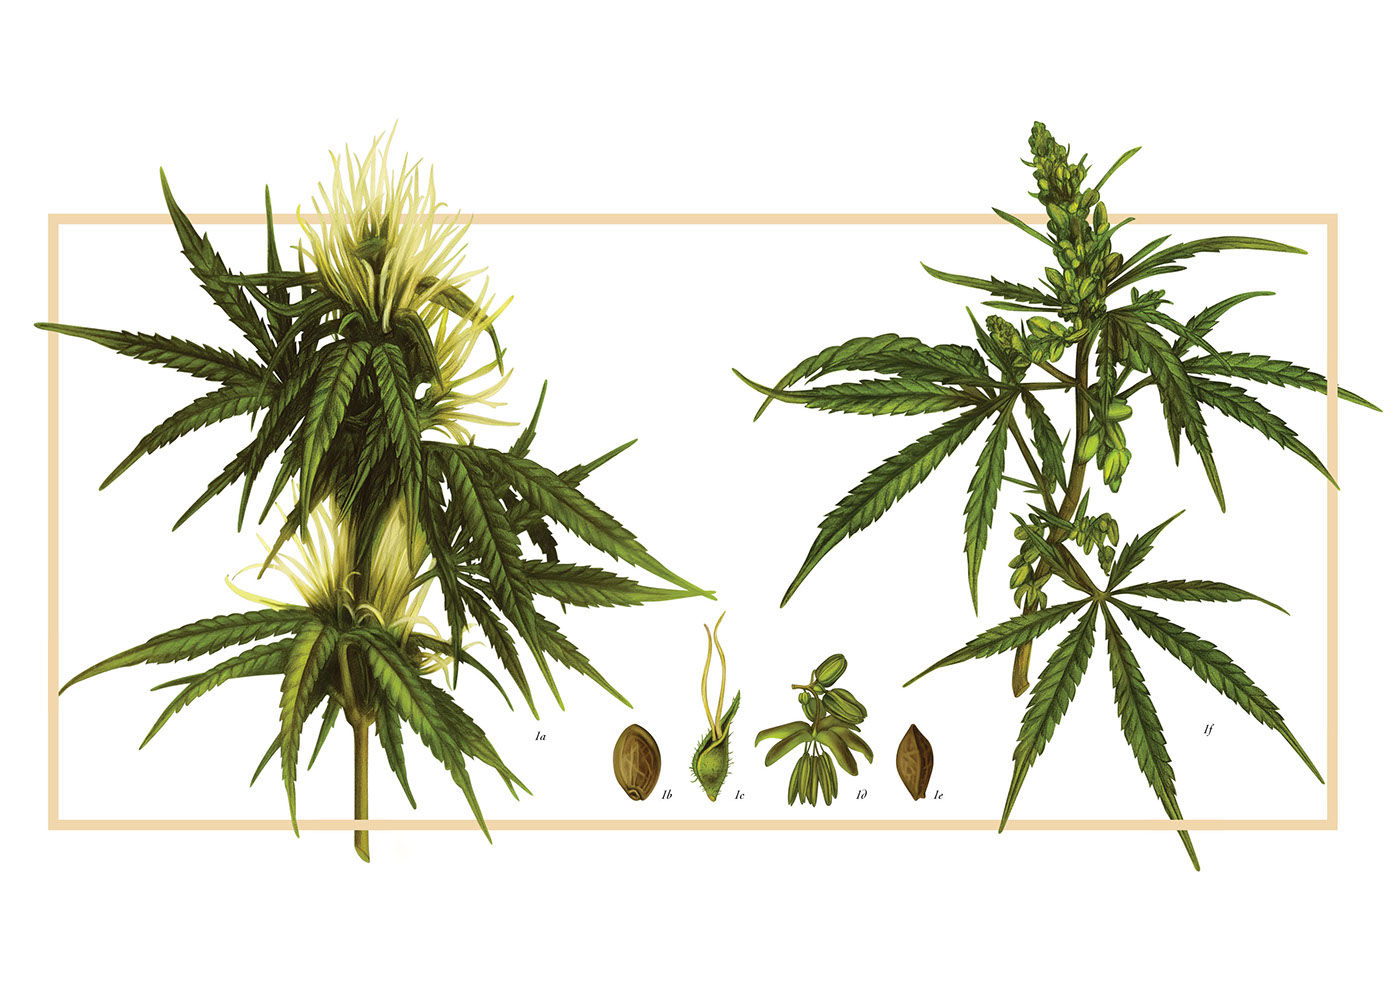 Drawn weed real Associations the known its from